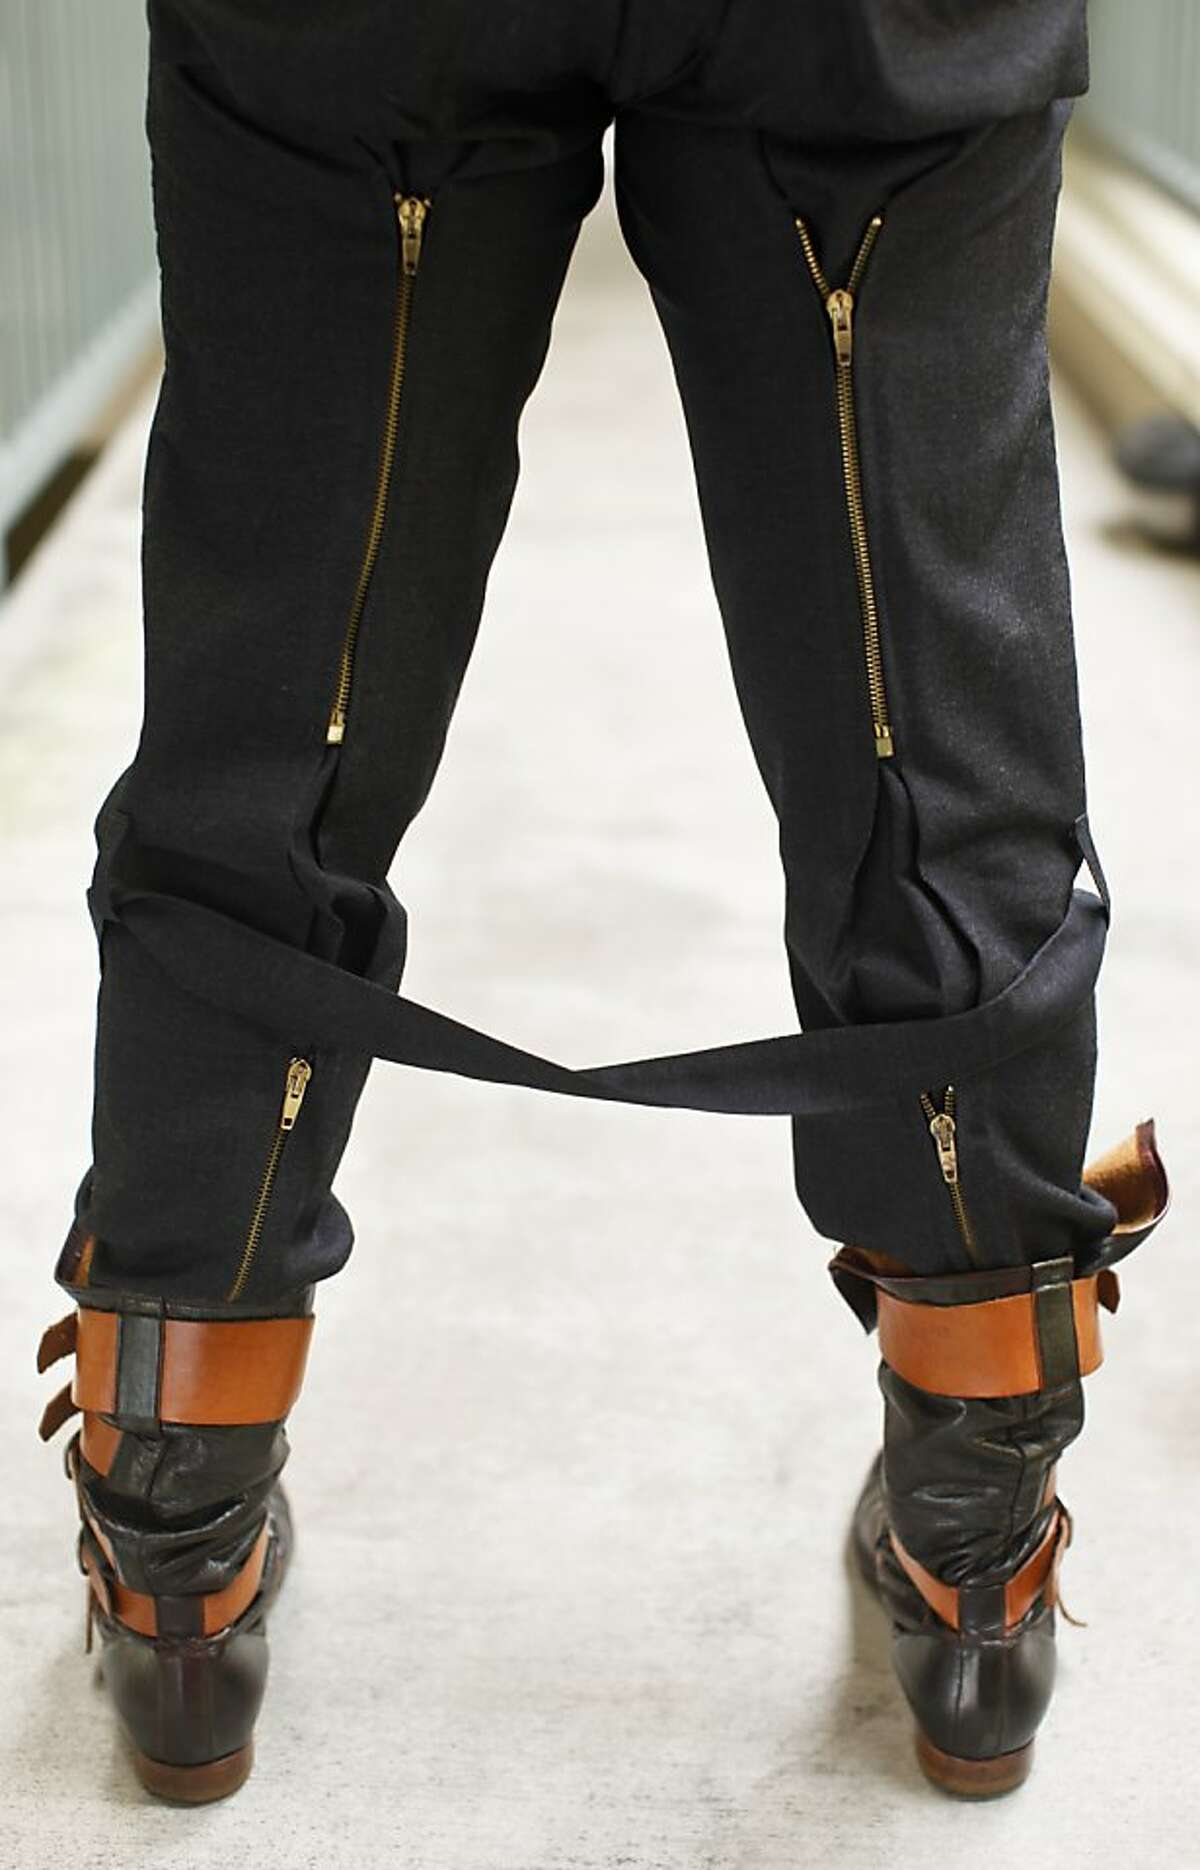 Fashion designer and punk rock musician Keanan Duffty wears his Vivienne Westwood bondage pants on Monday, March 18, 2013 in San Francisco, Calif.